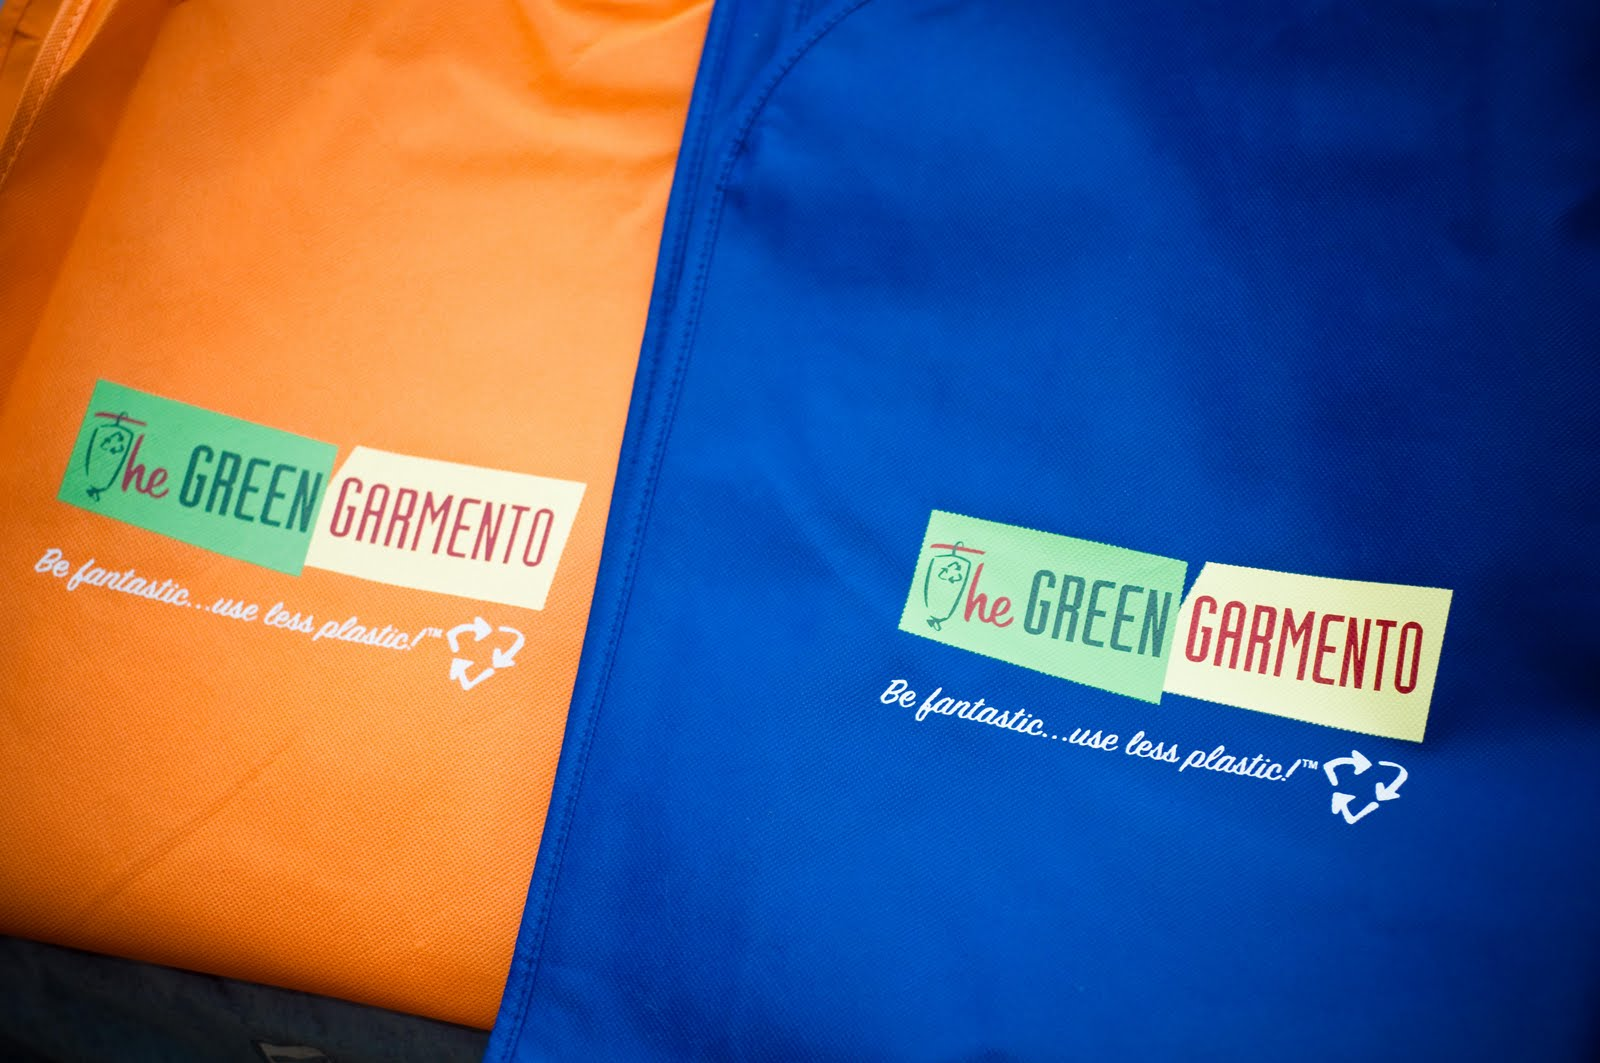 The Green Garmento garment bag